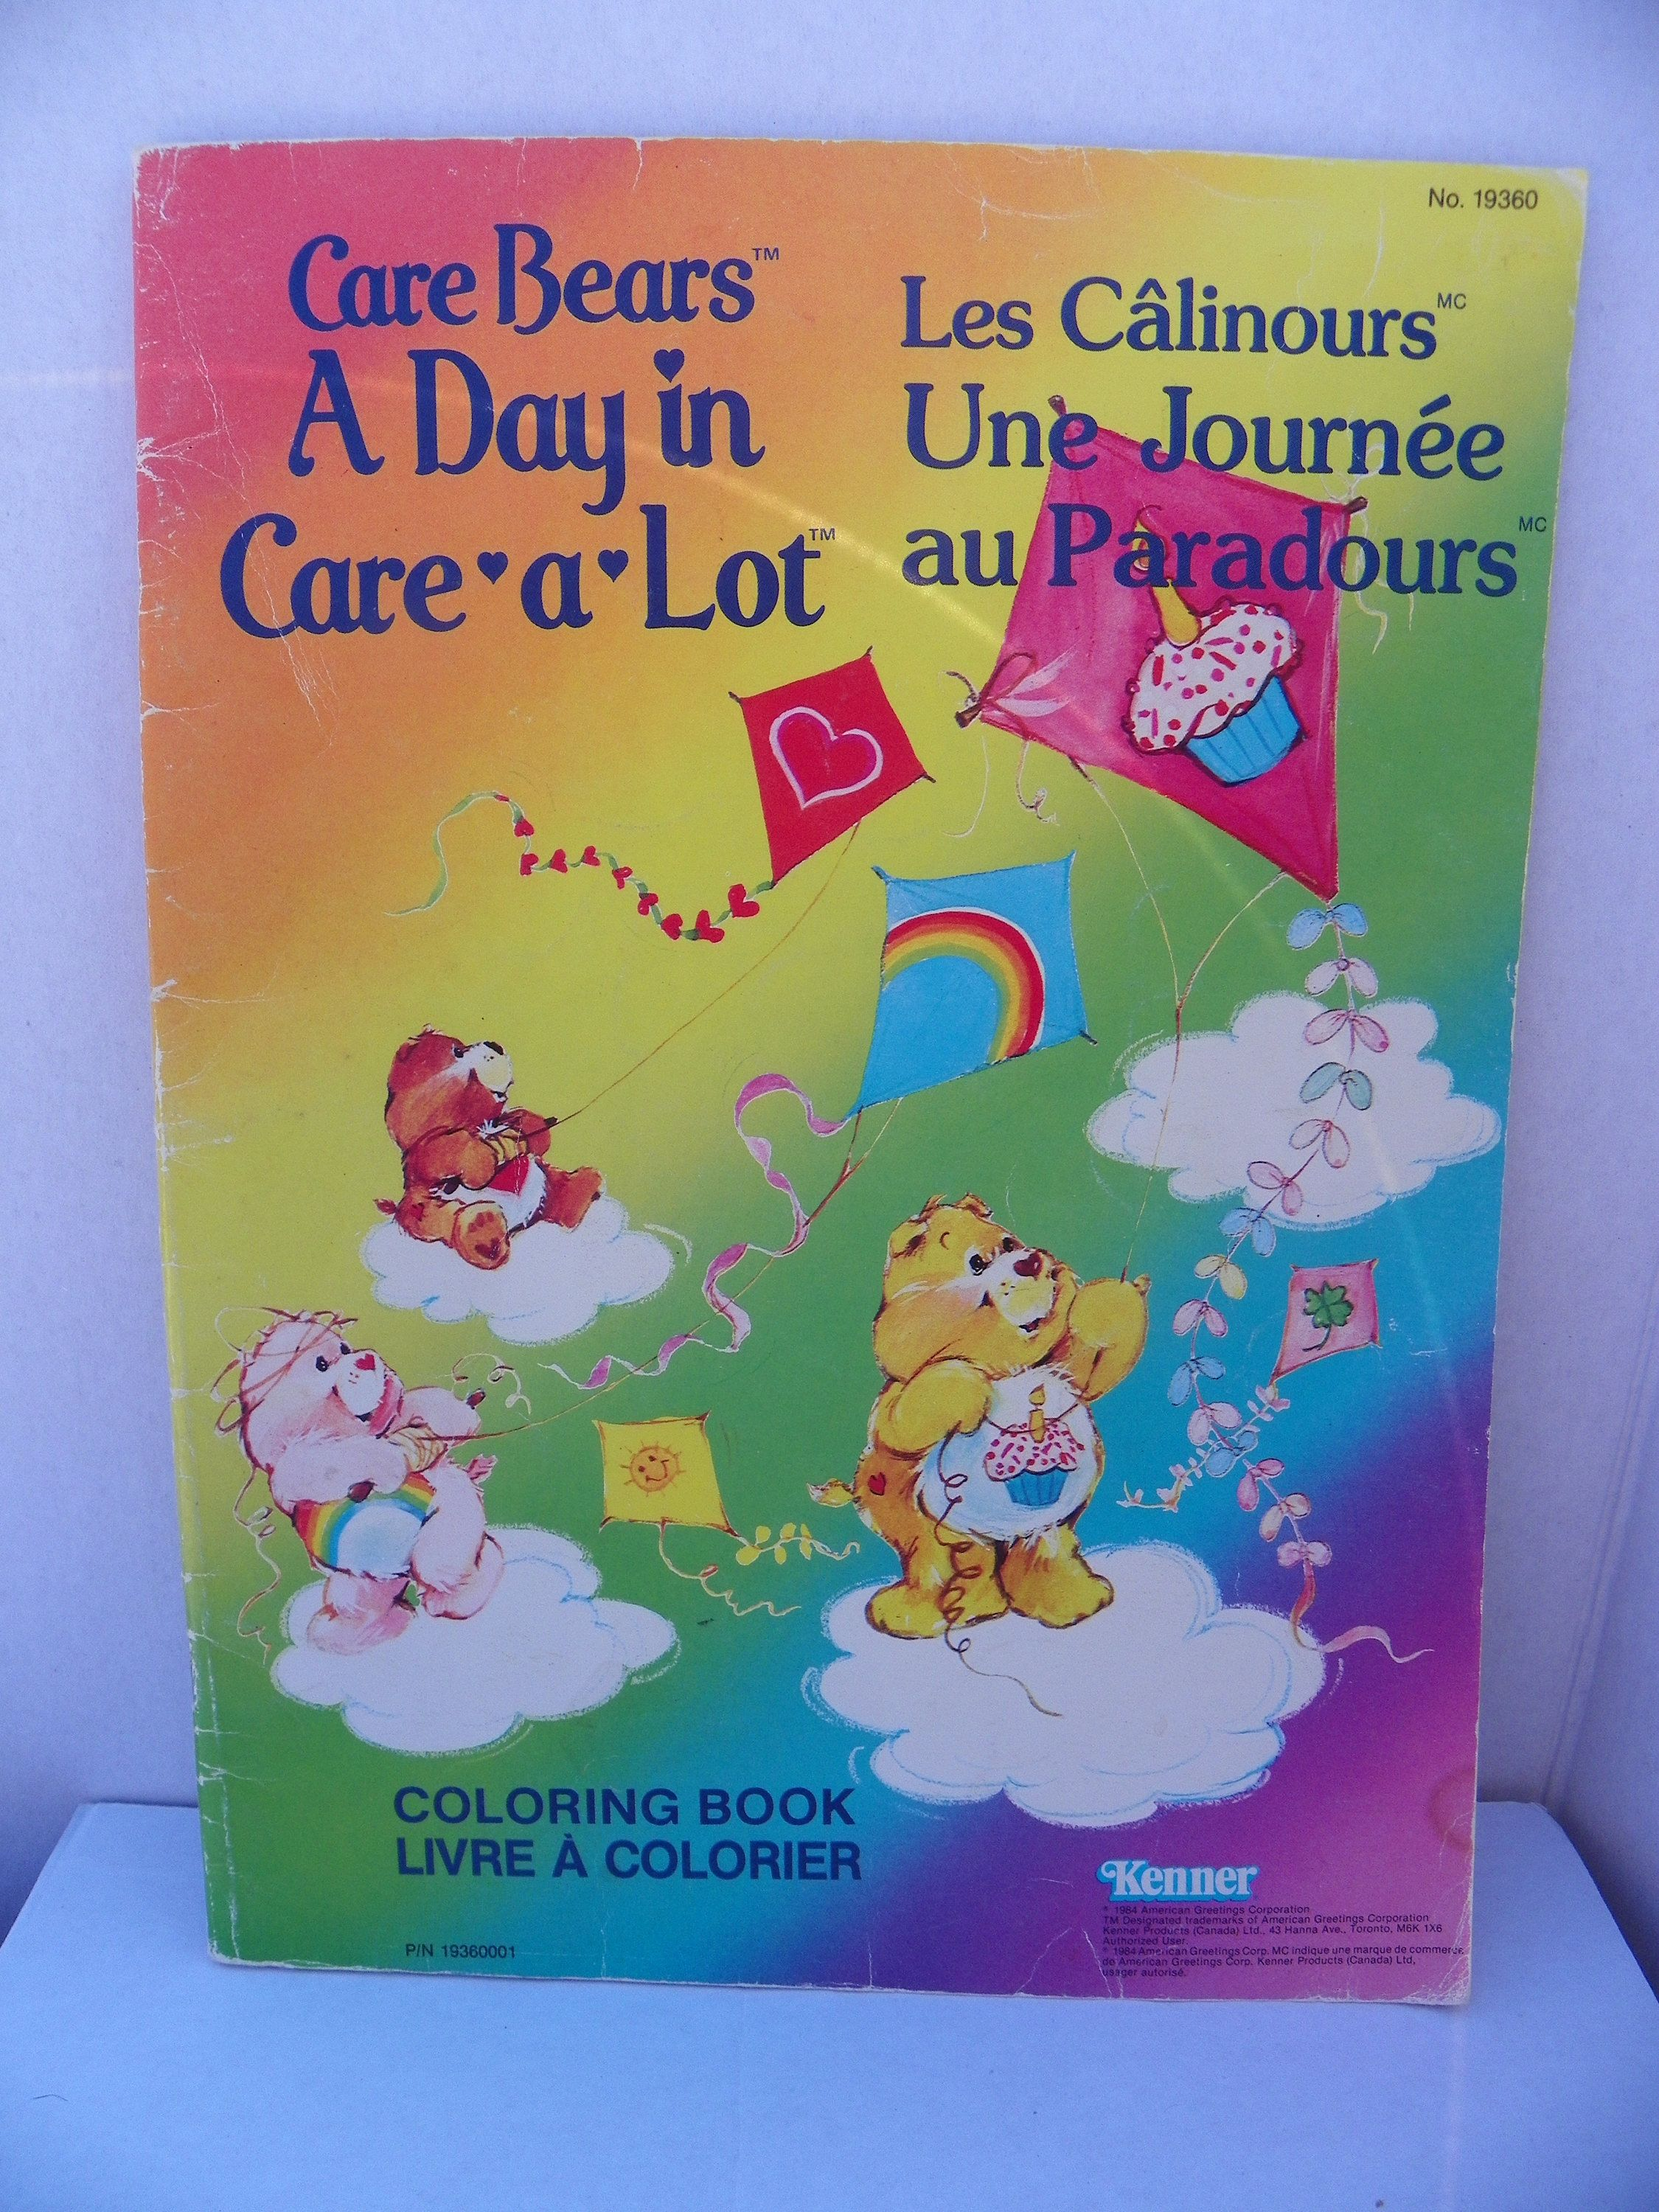 1984 care bears coloring book vintage kenner american greetings 1984 care bears coloring book vintage kenner american greetings company care bears coloring book a day in care a lot kids color book m4hsunfo